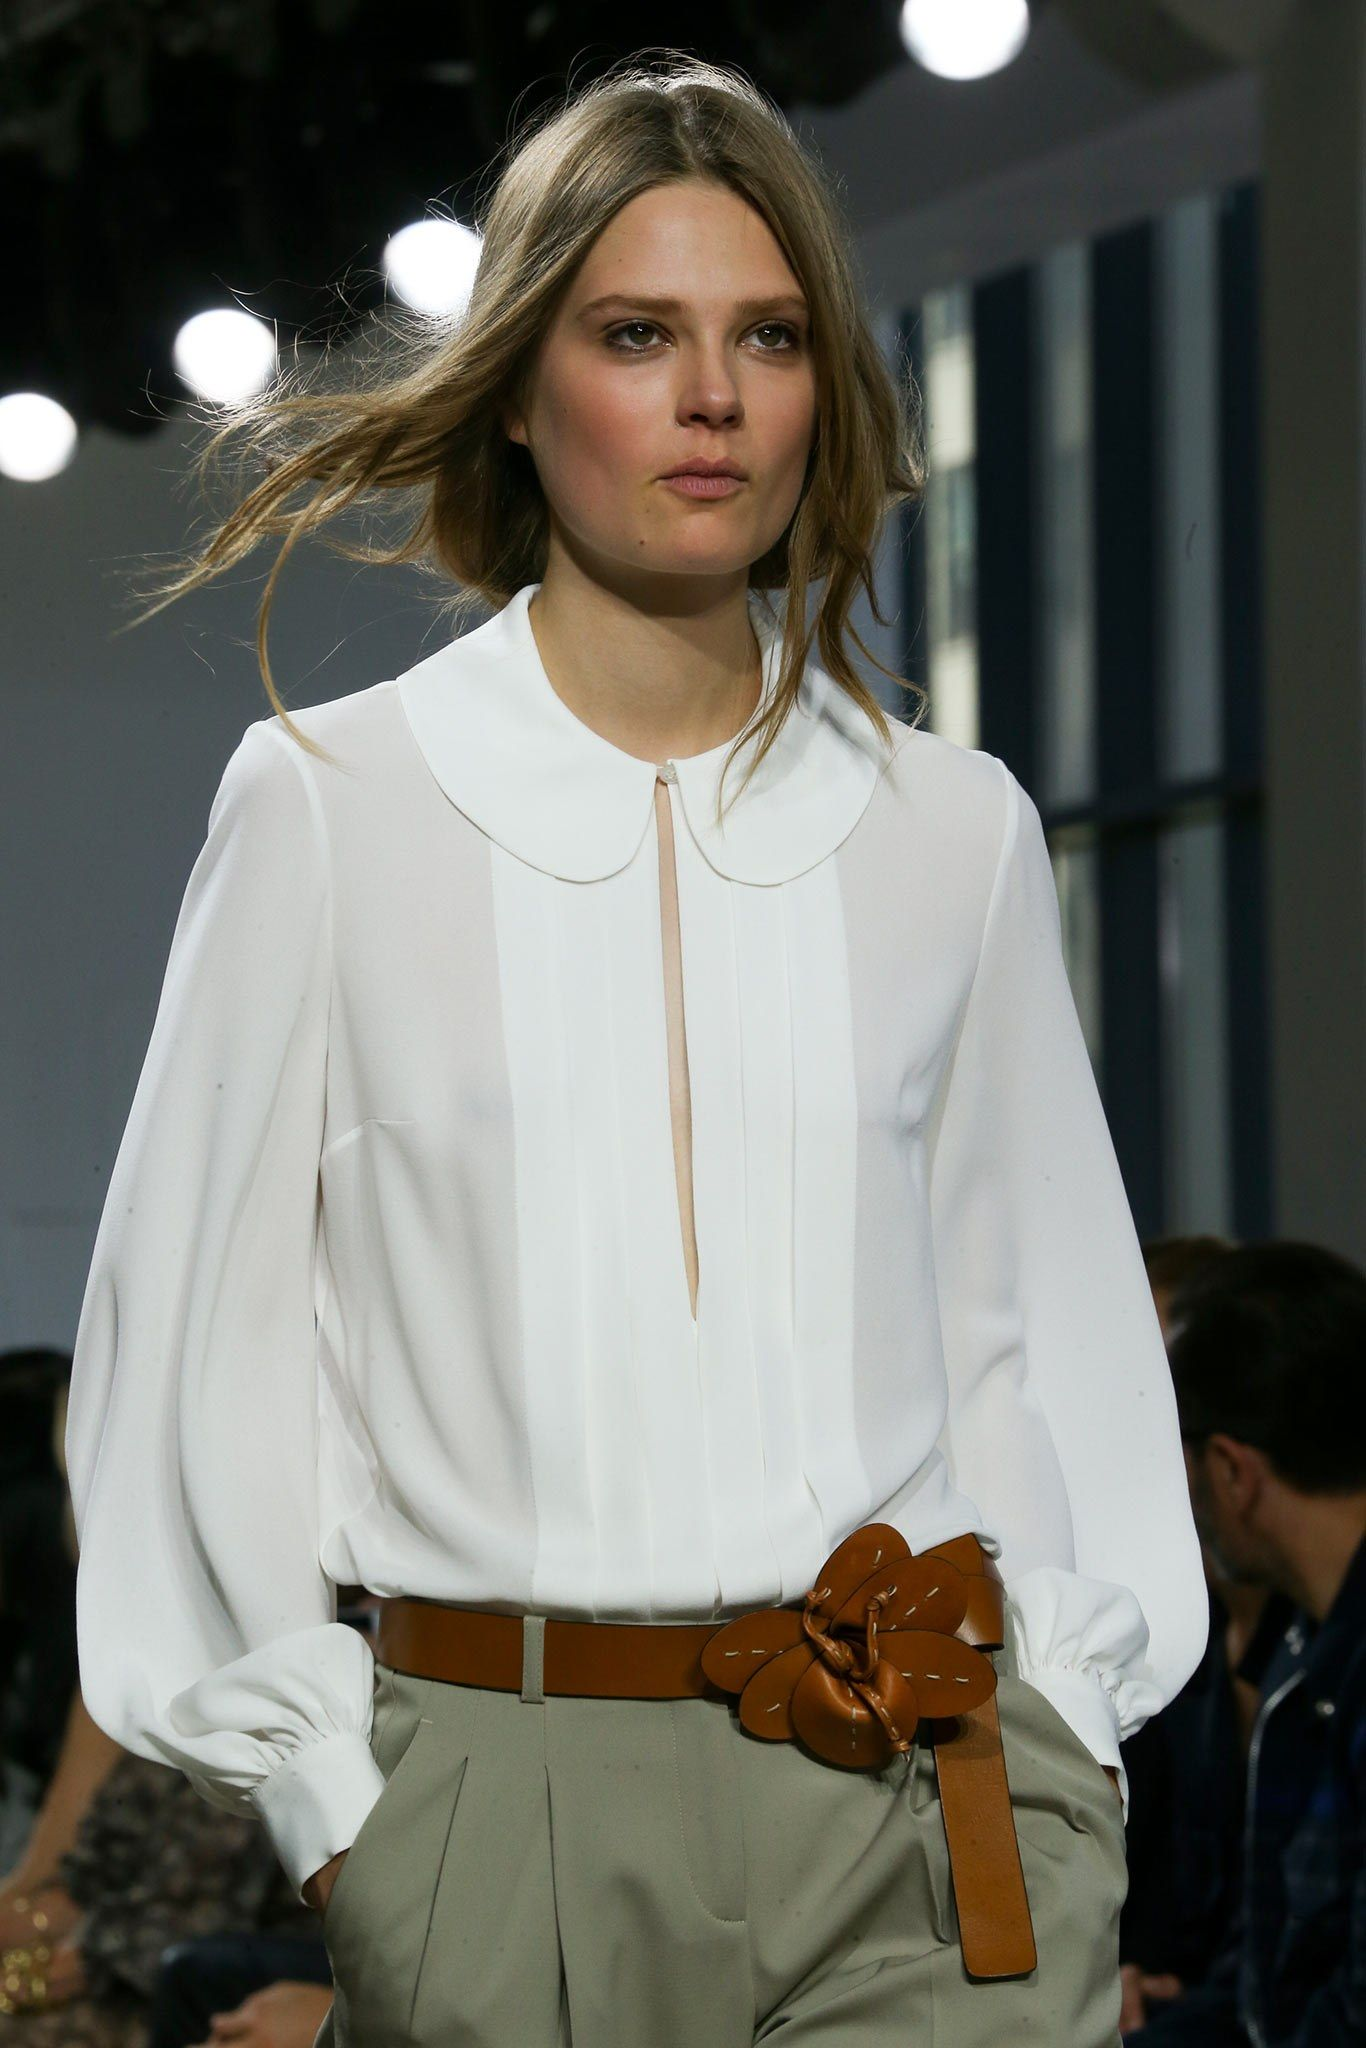 Michael Kors Collection Spring 2015 Ready-to-Wear Fashion Show